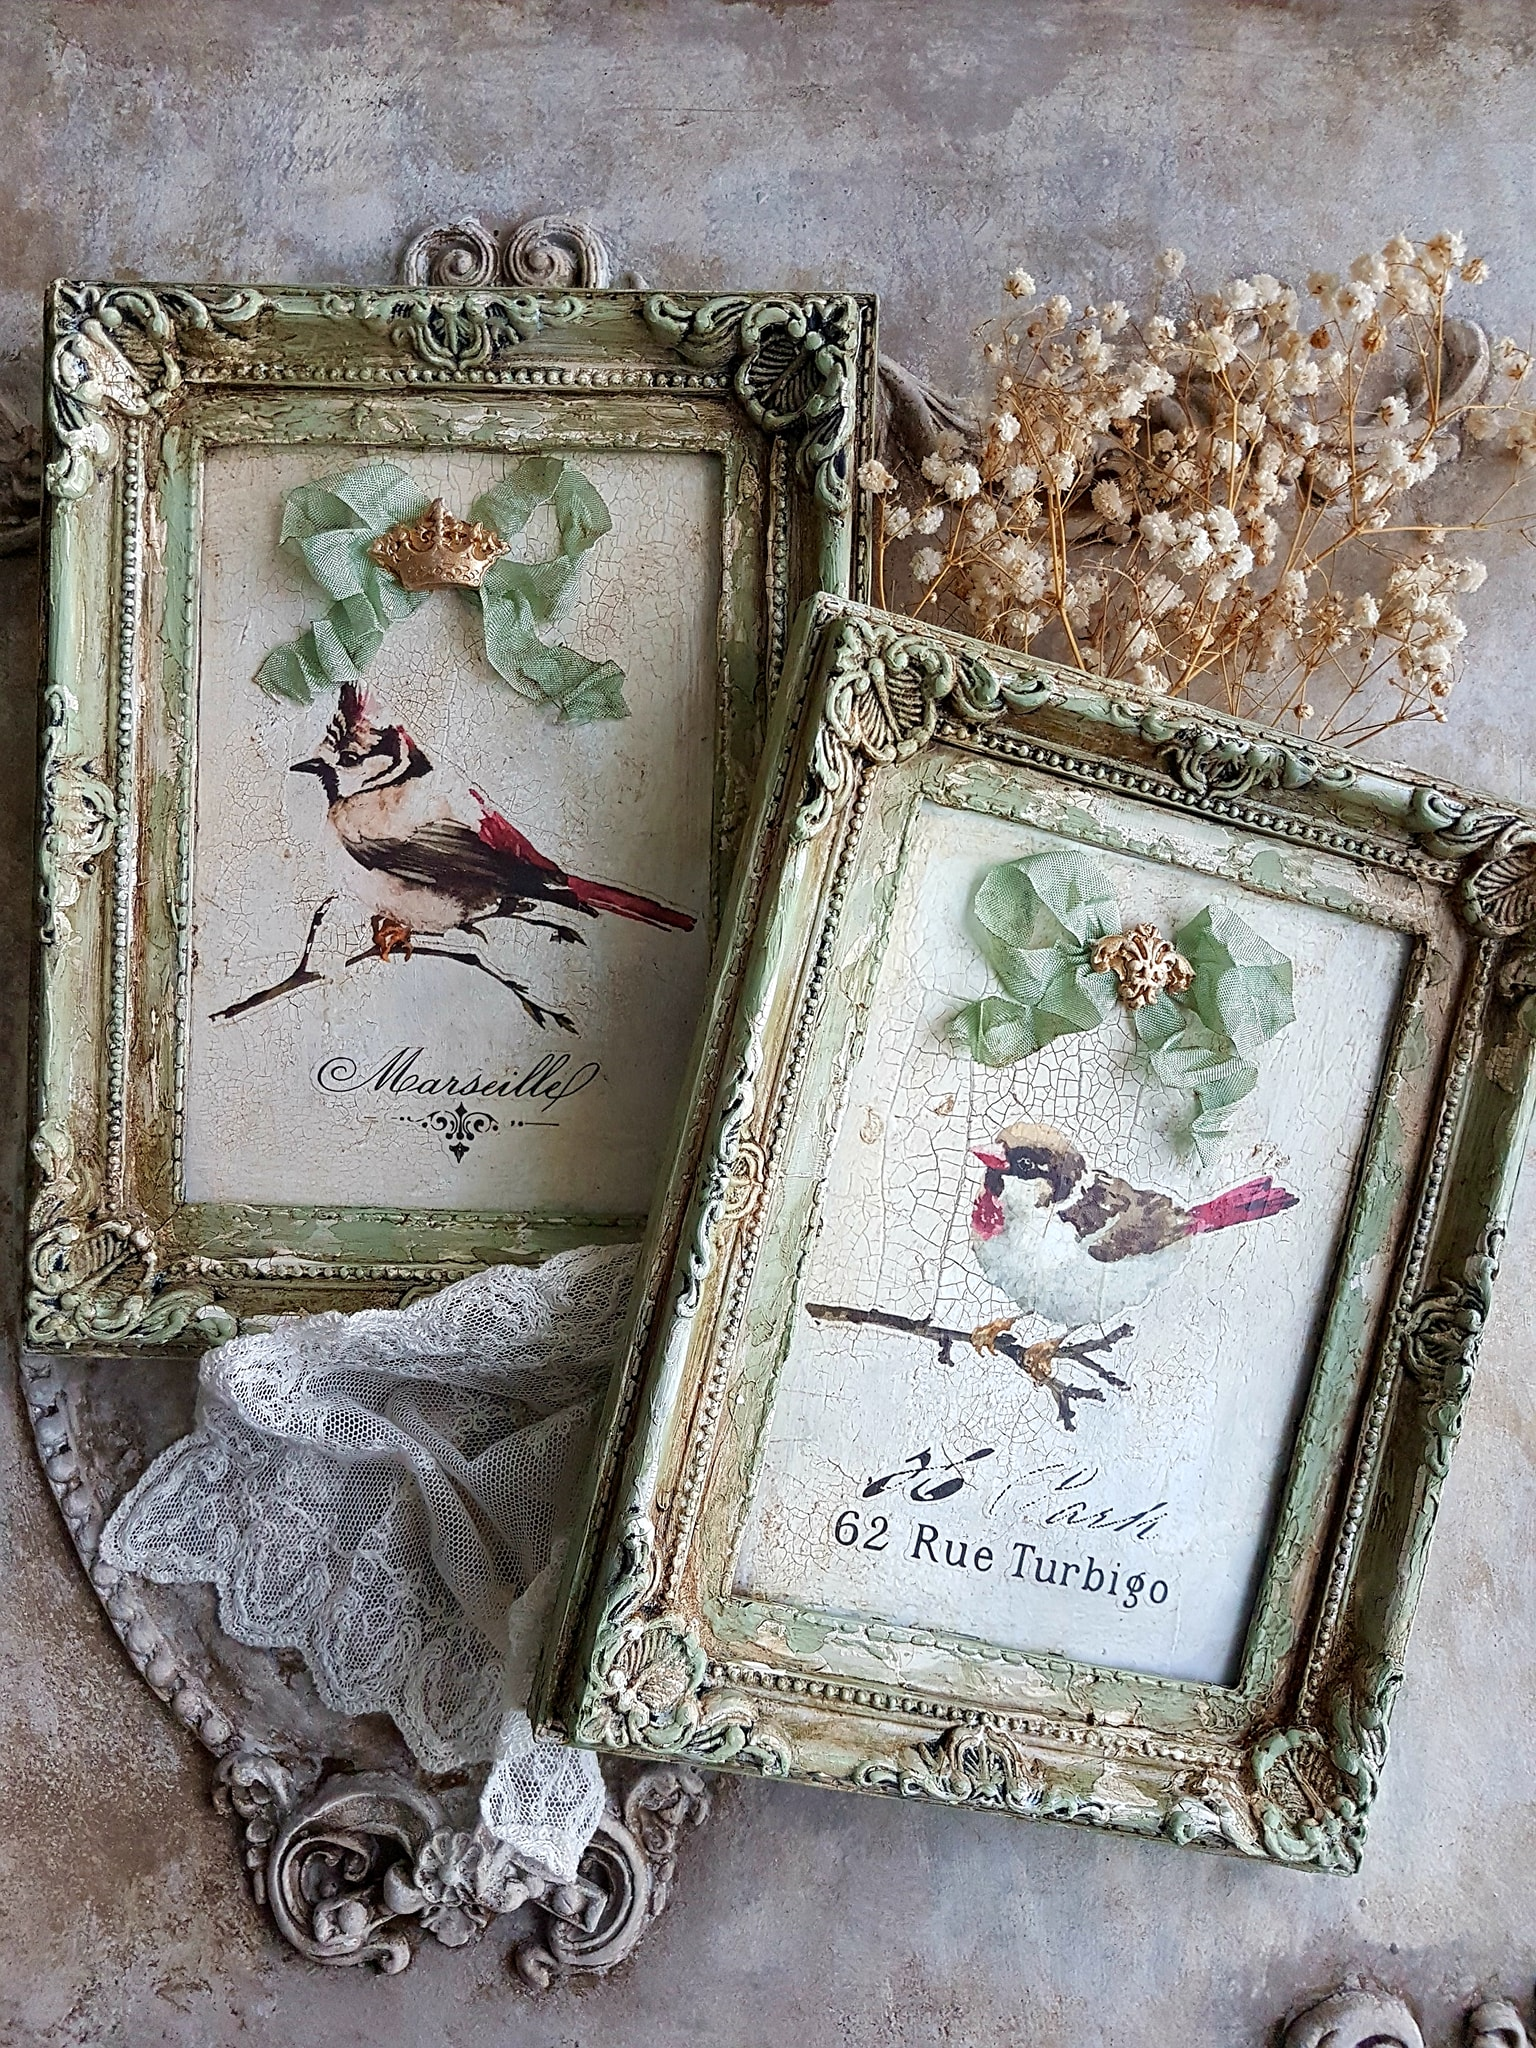 Can you believe these started out as plastic frames? Its amazing what she did to make them go from boring to wow using her talents! For this set, she used Chalk Paste®, Finnabair White Crackle Paste and Van Dyke Glaze by Dixie Belle Paint company.